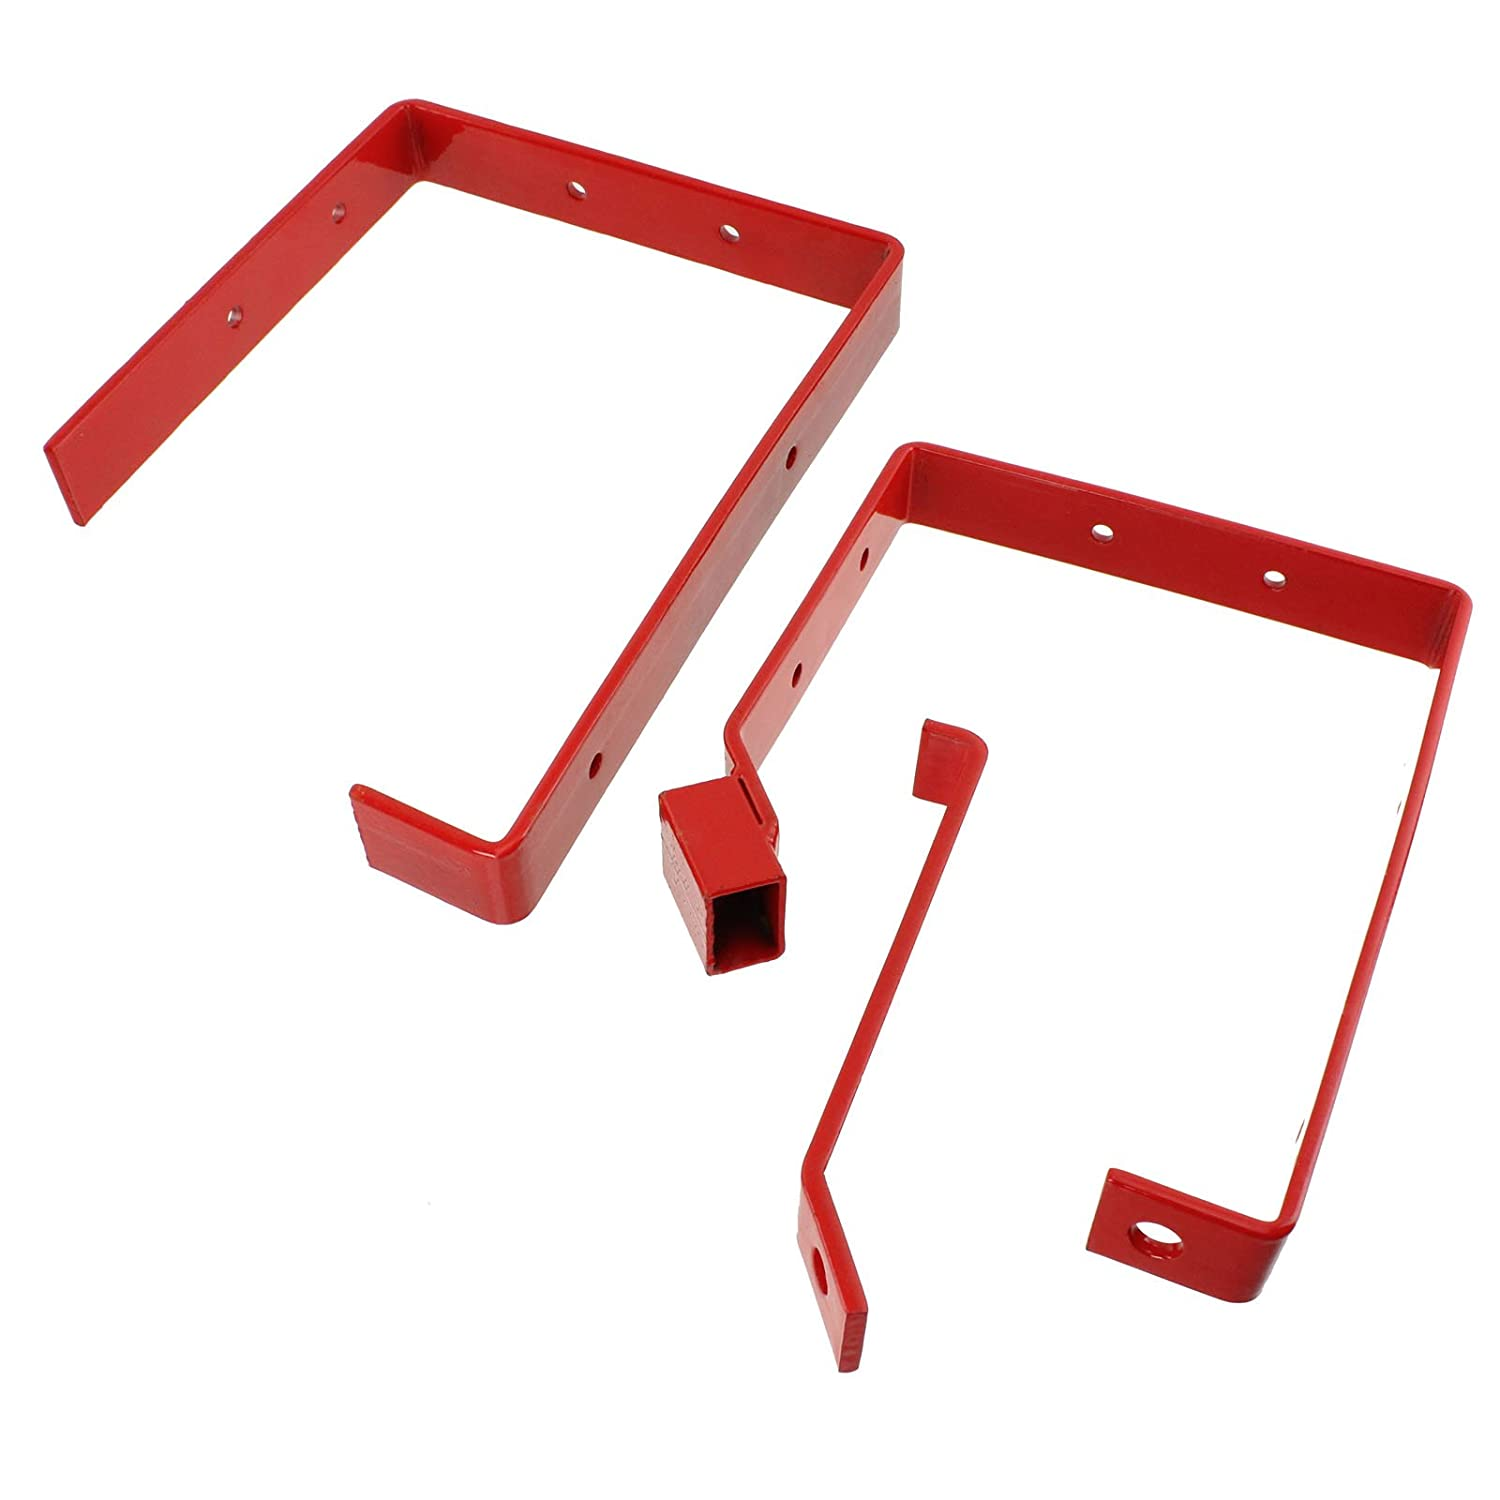 2 Pairs SPARES2GO Universal Wall Ladder Rack Brackets